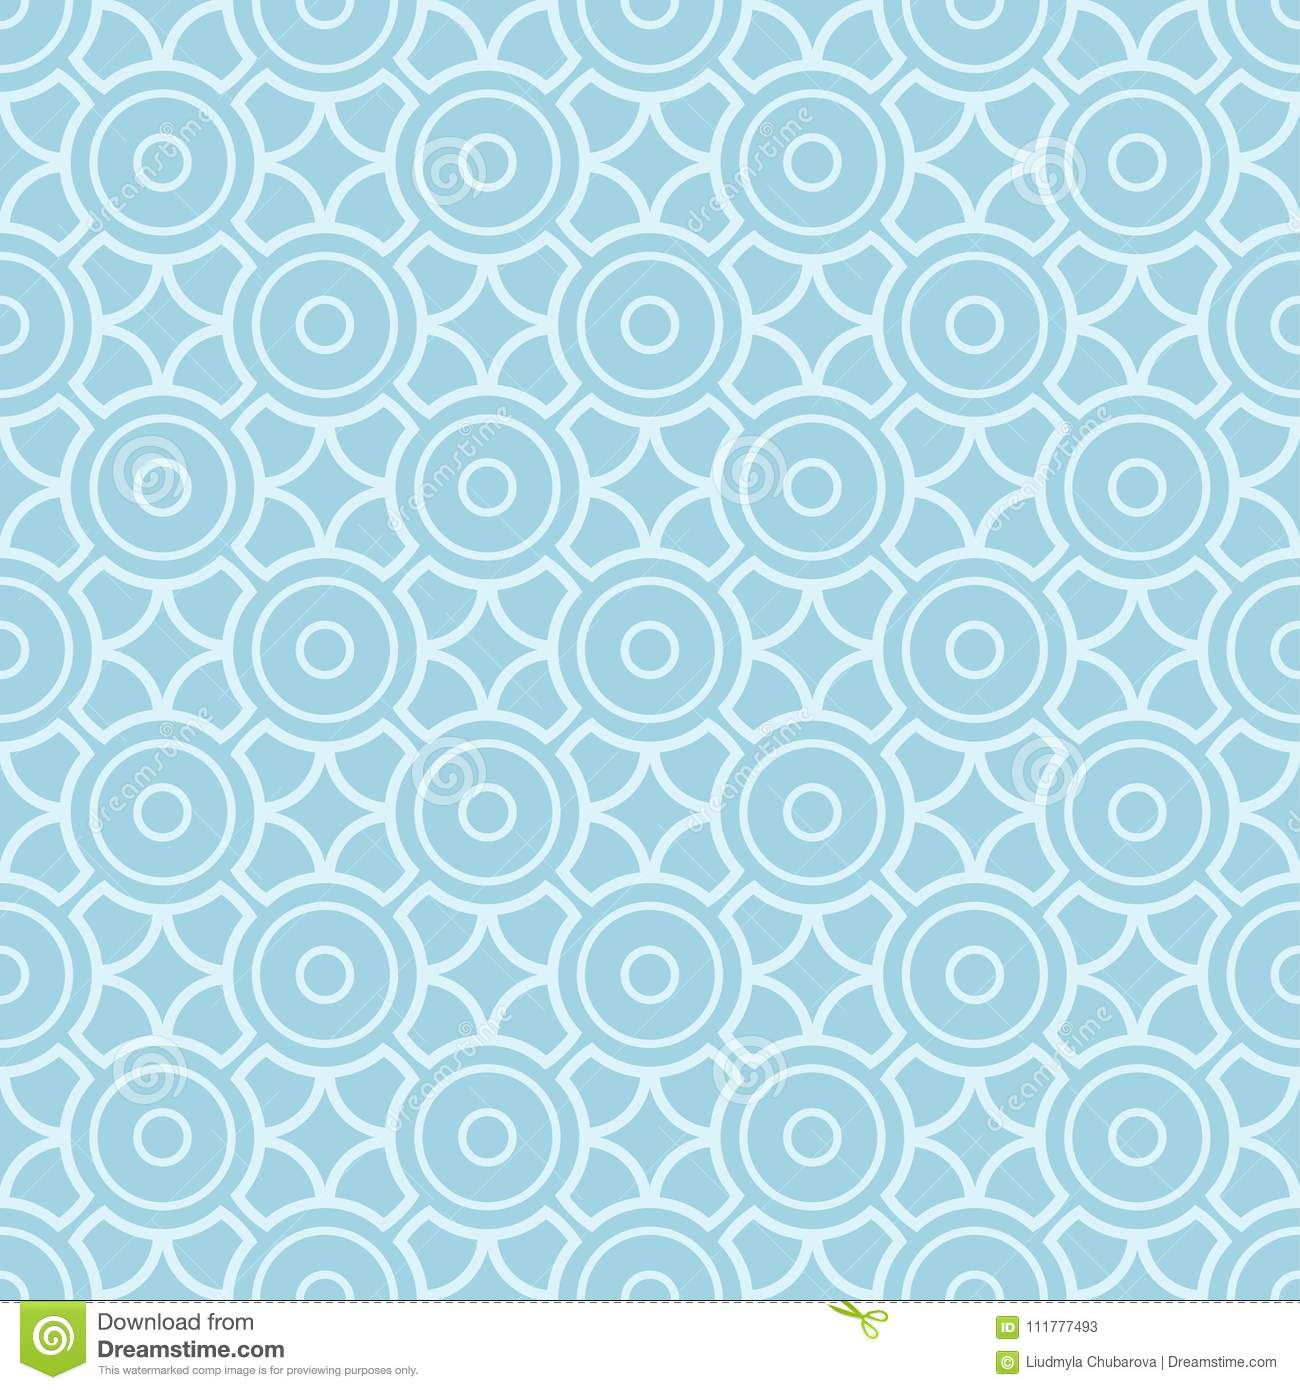 Light blue geometric seamless pattern